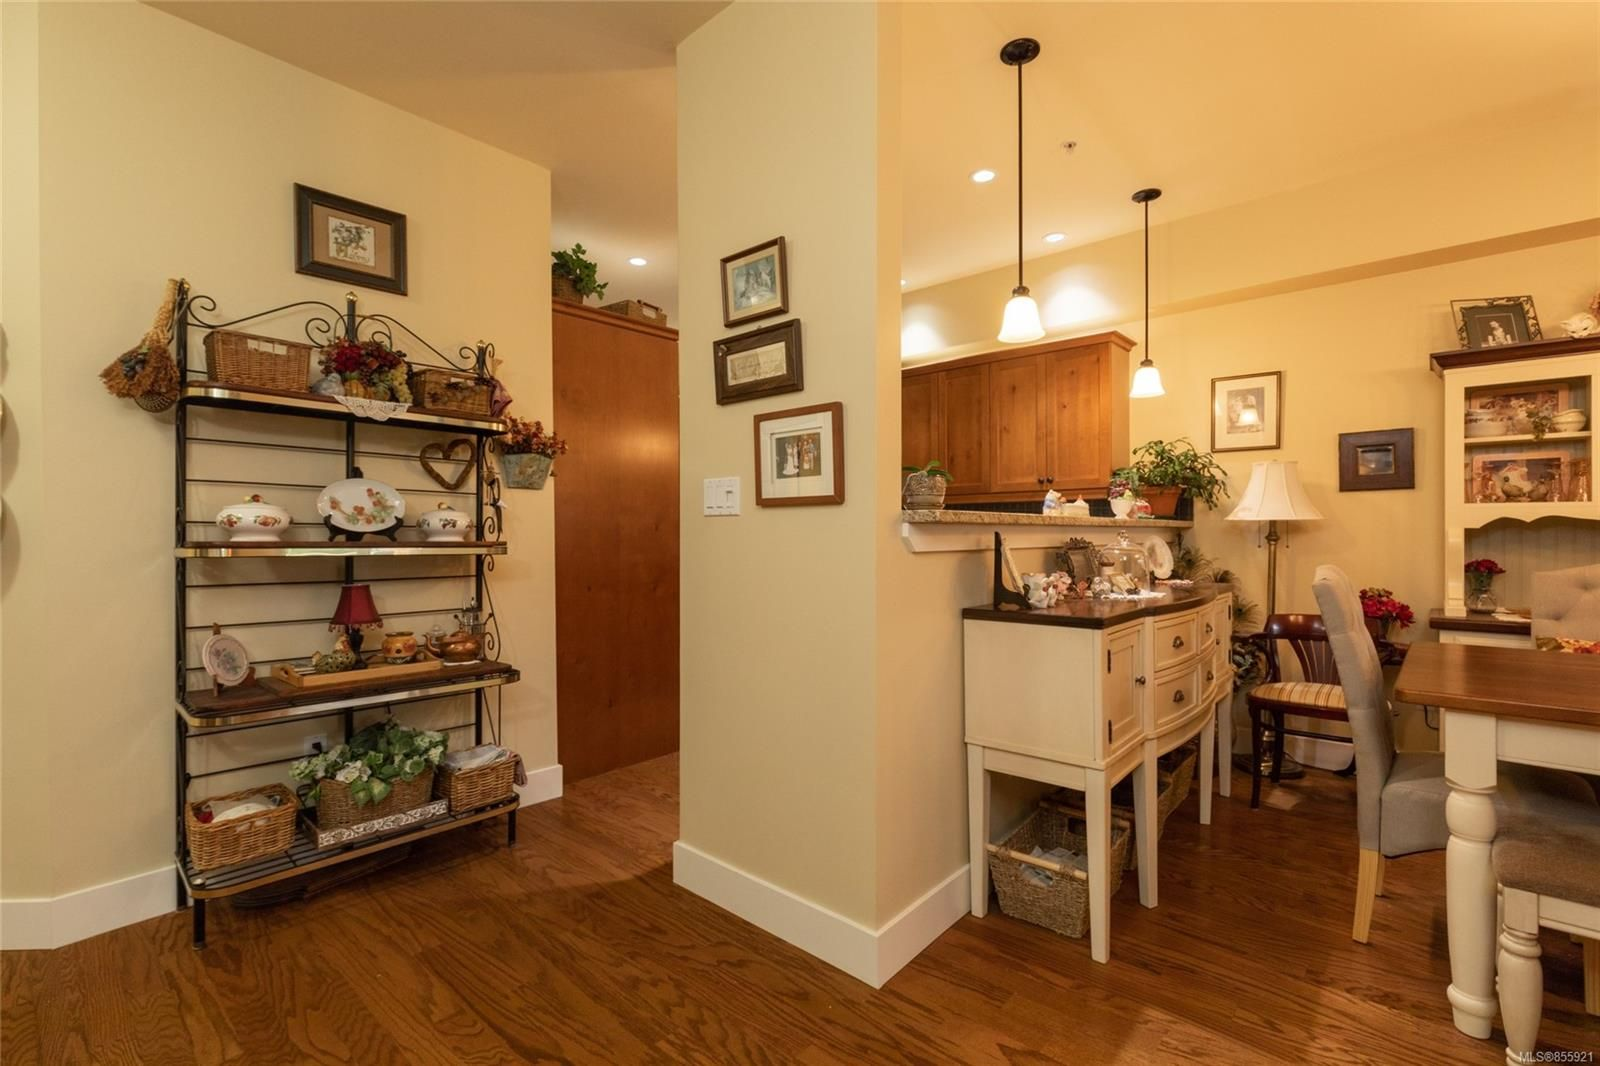 Photo 7: Photos: 206 1244 4TH Ave in : Du Ladysmith Row/Townhouse for sale (Duncan)  : MLS®# 855921